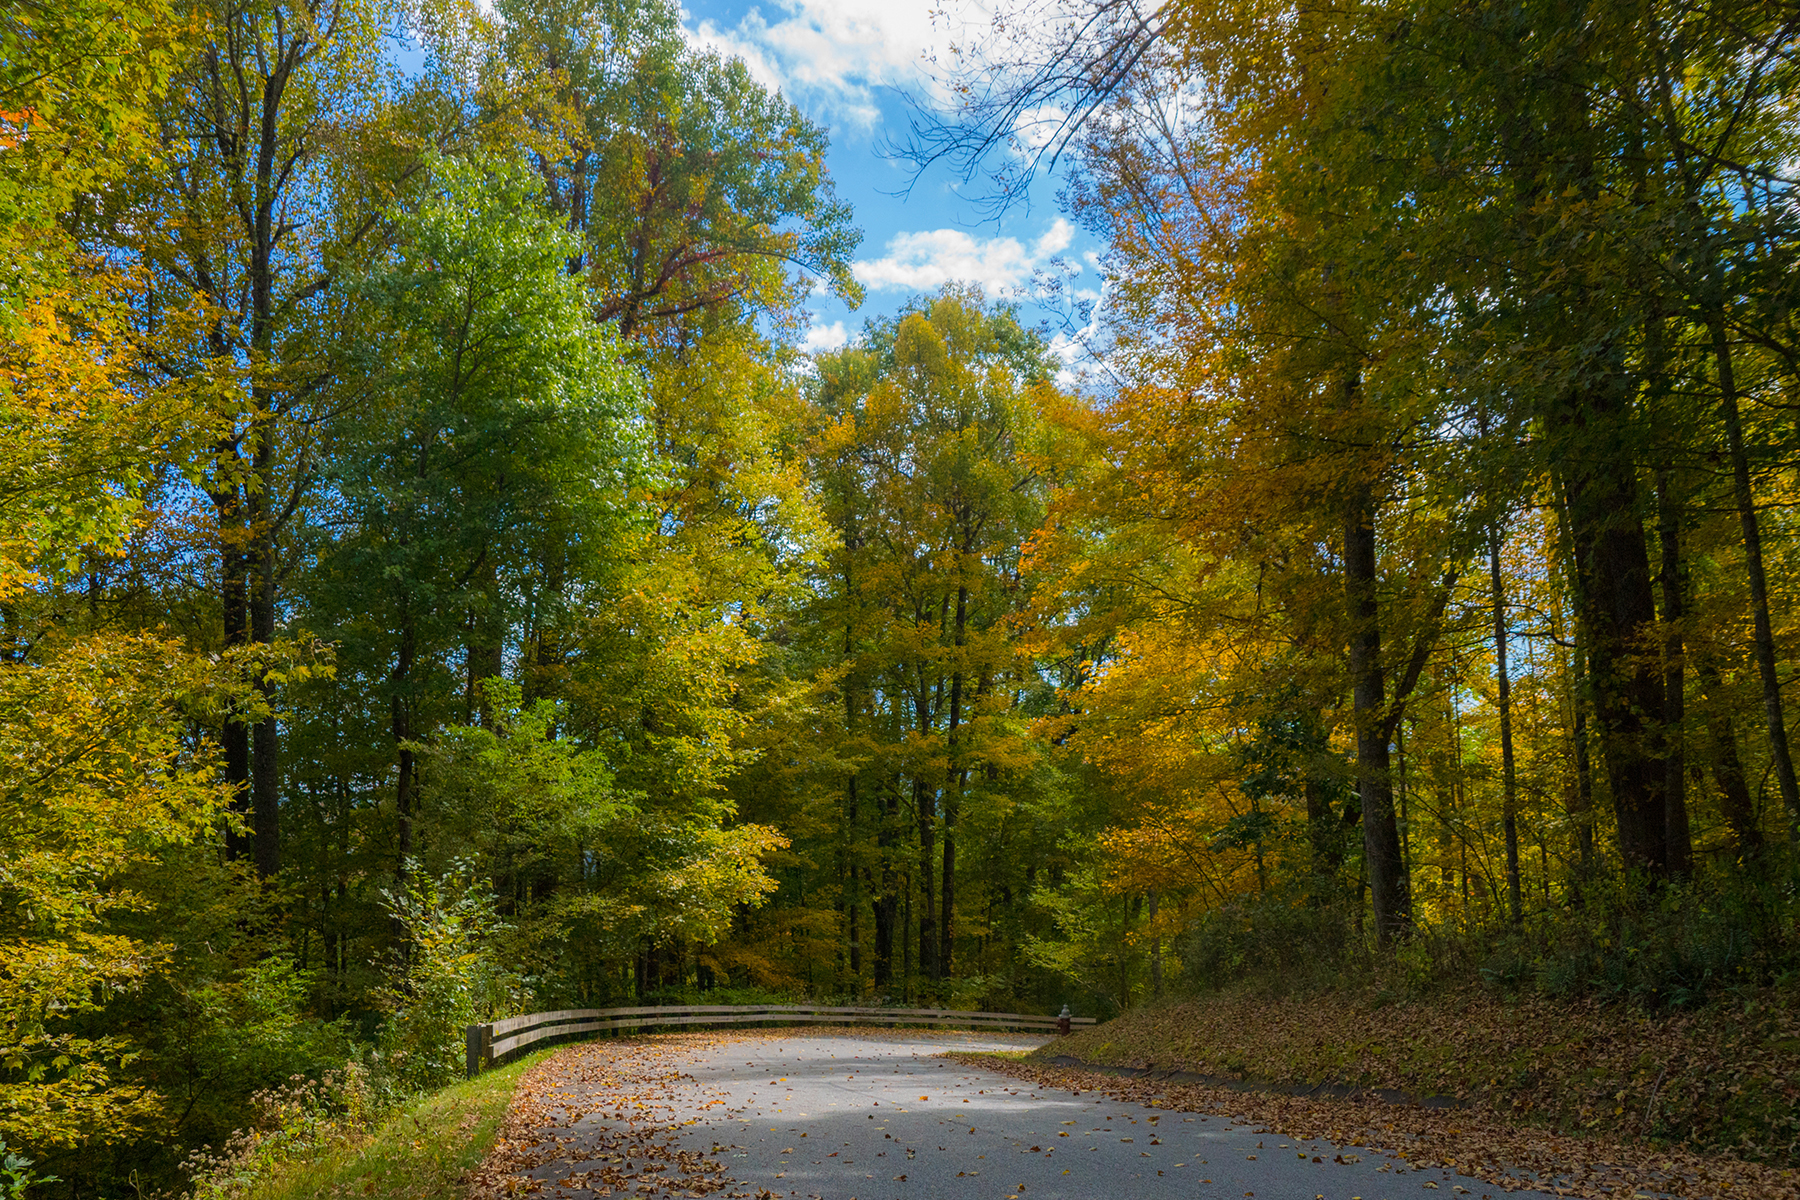 Land for Sale at BOONE - COUNCILL OAKS Lot 13 Honeysuckle Ln, Boone, North Carolina 28607 United States